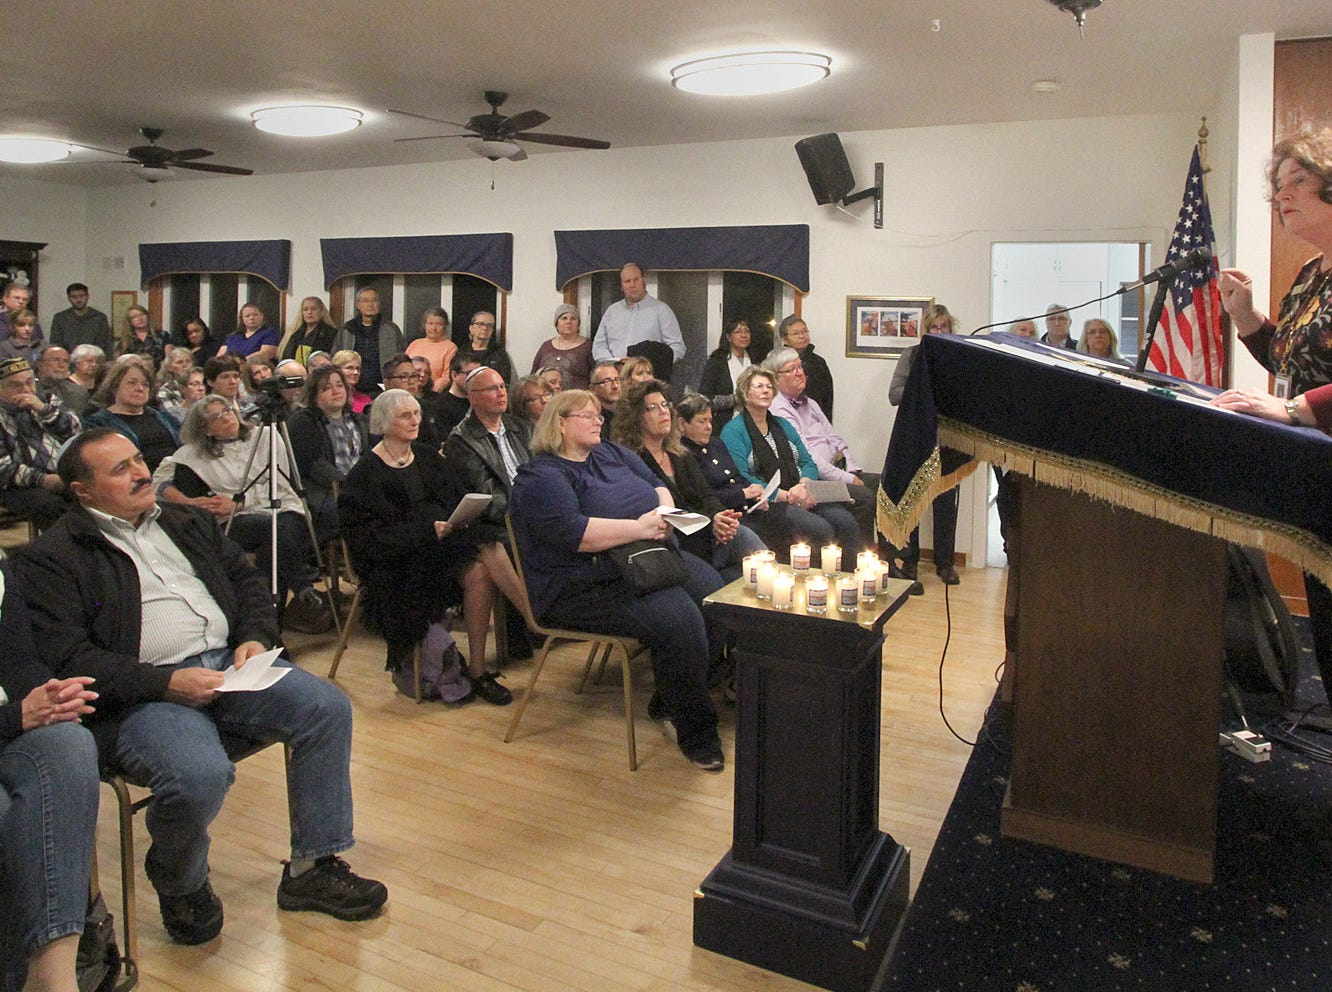 The Beth Hatikvah (House of Hope) Synagogue in Bremerton held a memorial service for the Tree of Life Synagogue shootings Tuesday night in Bremerton. Poulsbo Mayor Becky Ericson talks to the standing room only crowd inside the synagogue.